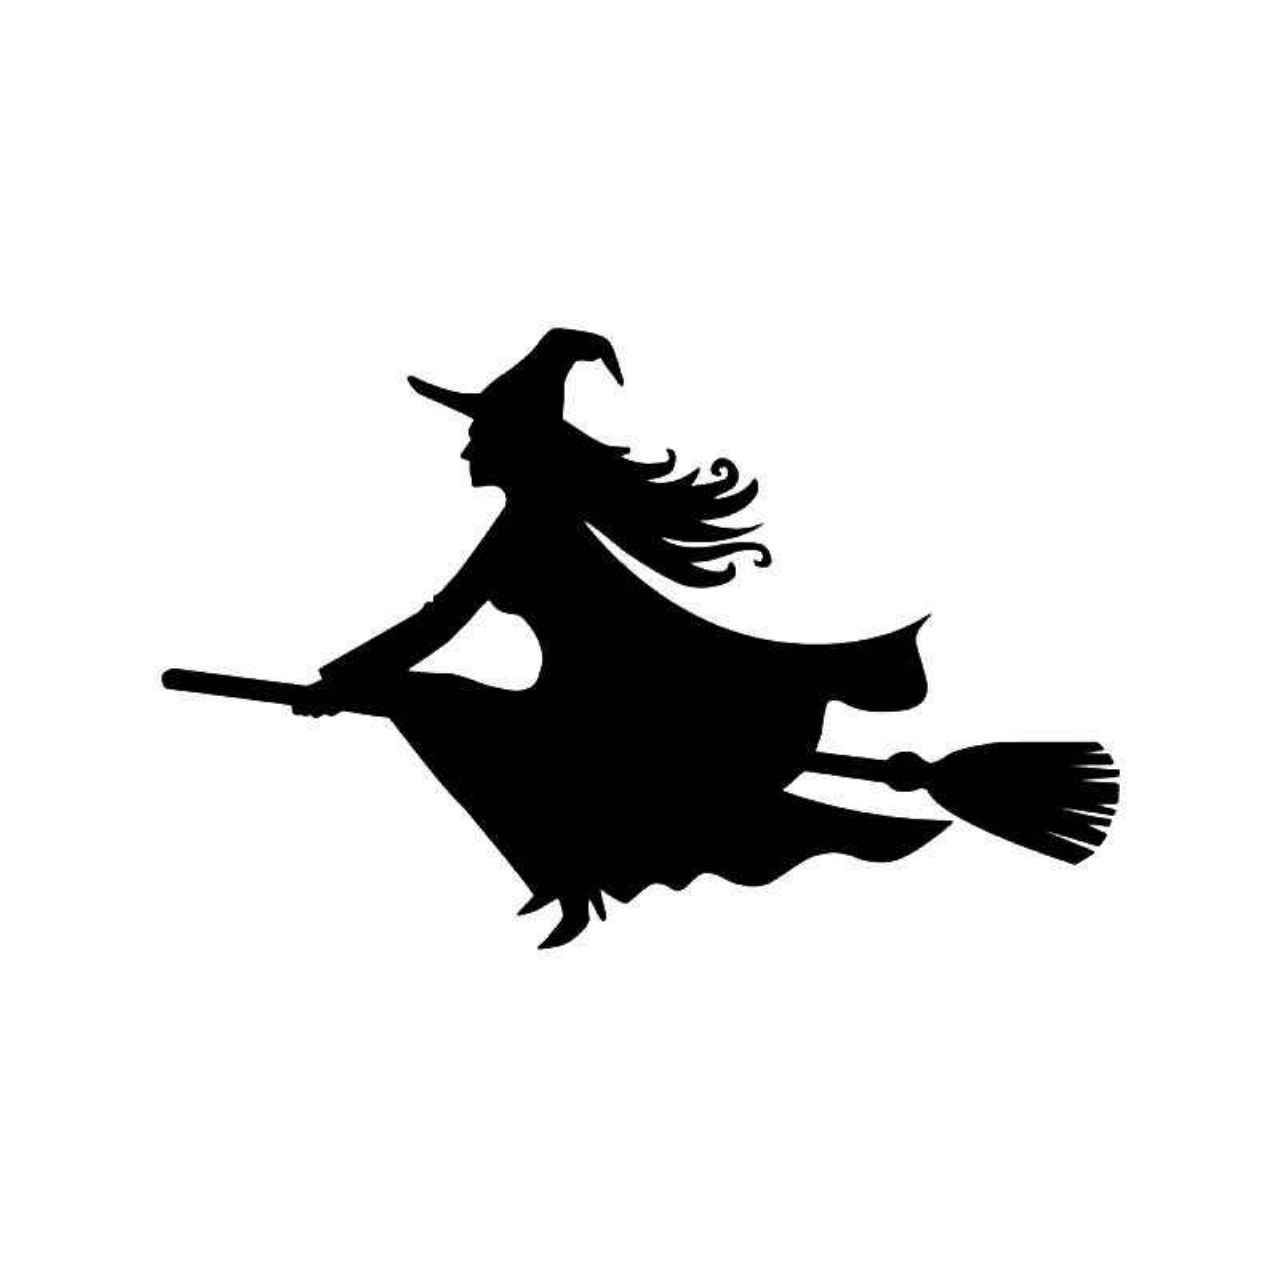 silhouette of witch on broomstick witch flying broom halloween vinyl decal sticker witch of silhouette broomstick on witch